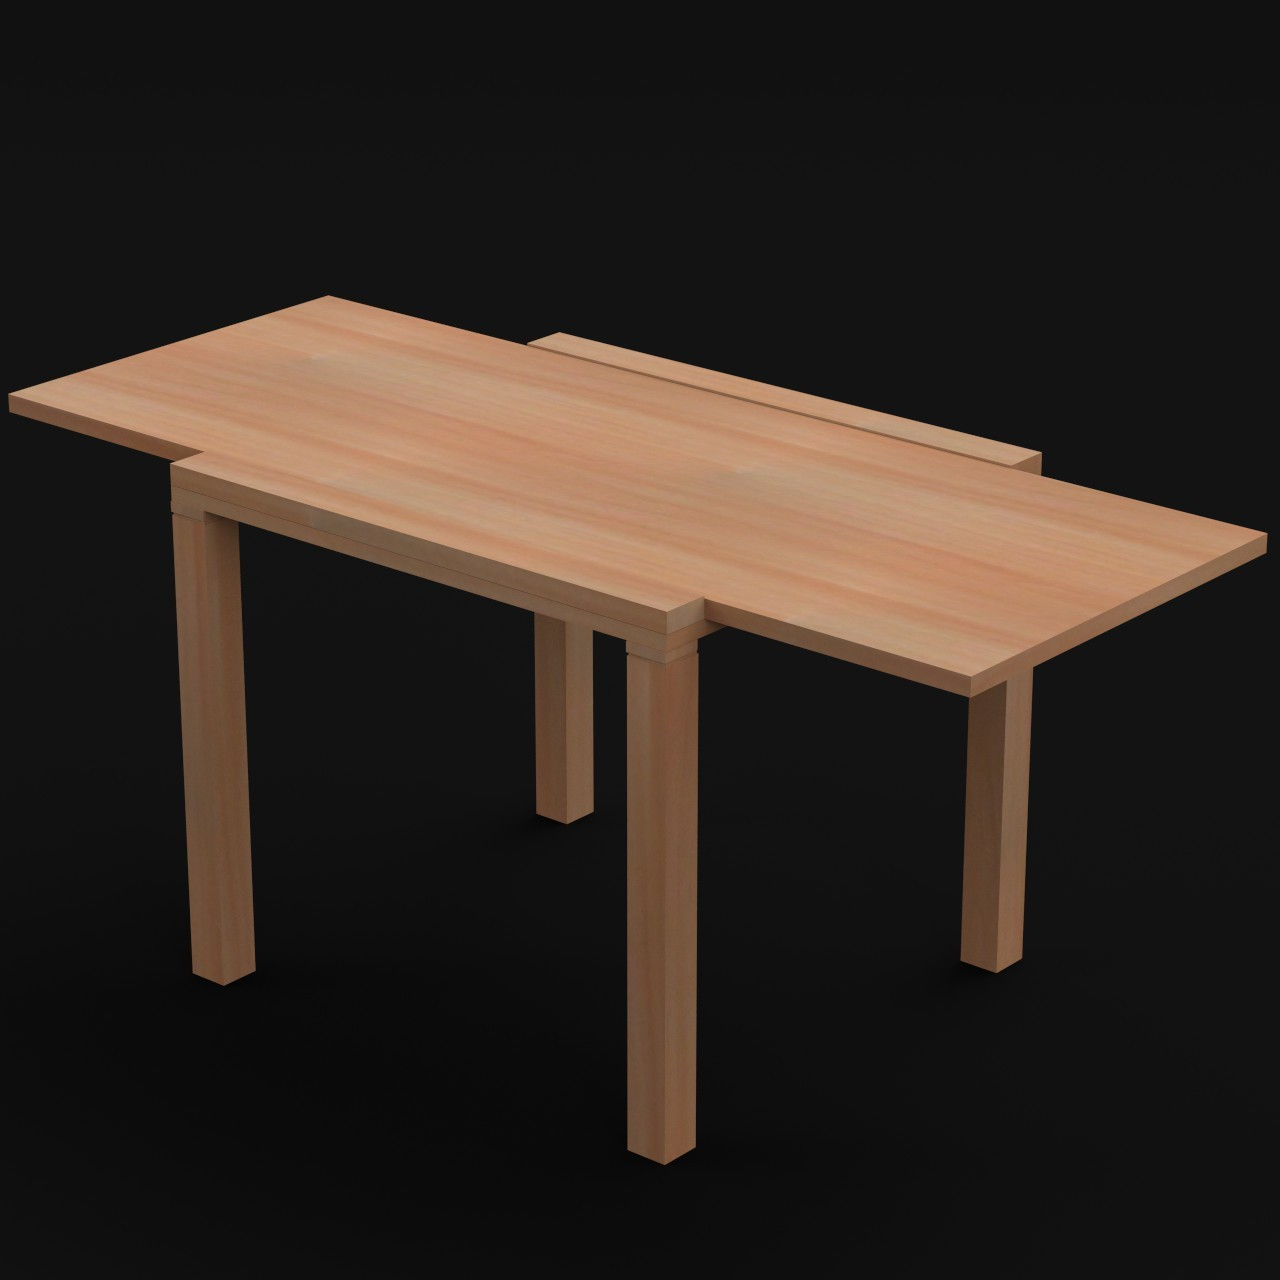 Wooden extended table uv 3ds for Table th 00 02